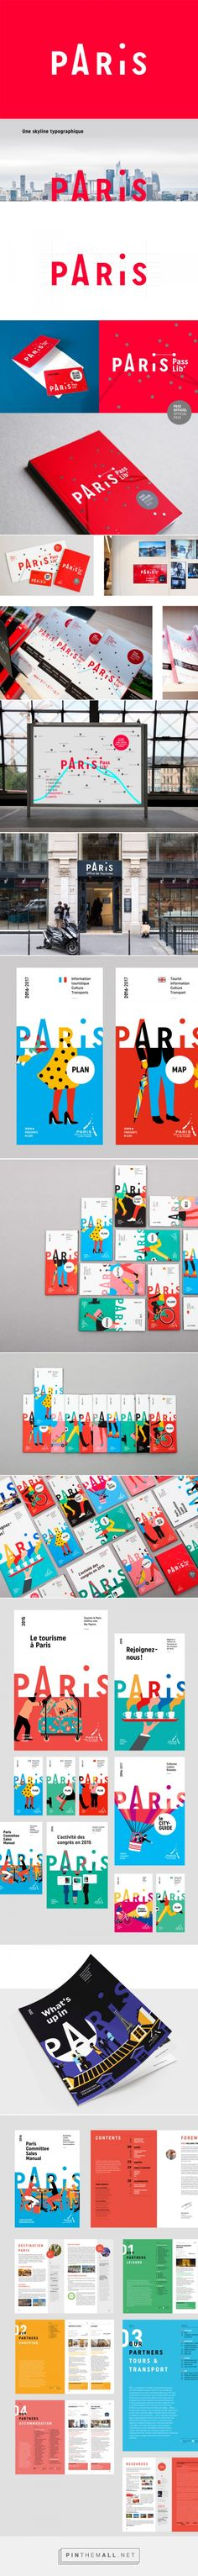 Charte graphique de l'Office de Tourisme de Paris - Graphéine - Agence de communication Paris Lyon... - a grouped images picture - Pin Them All